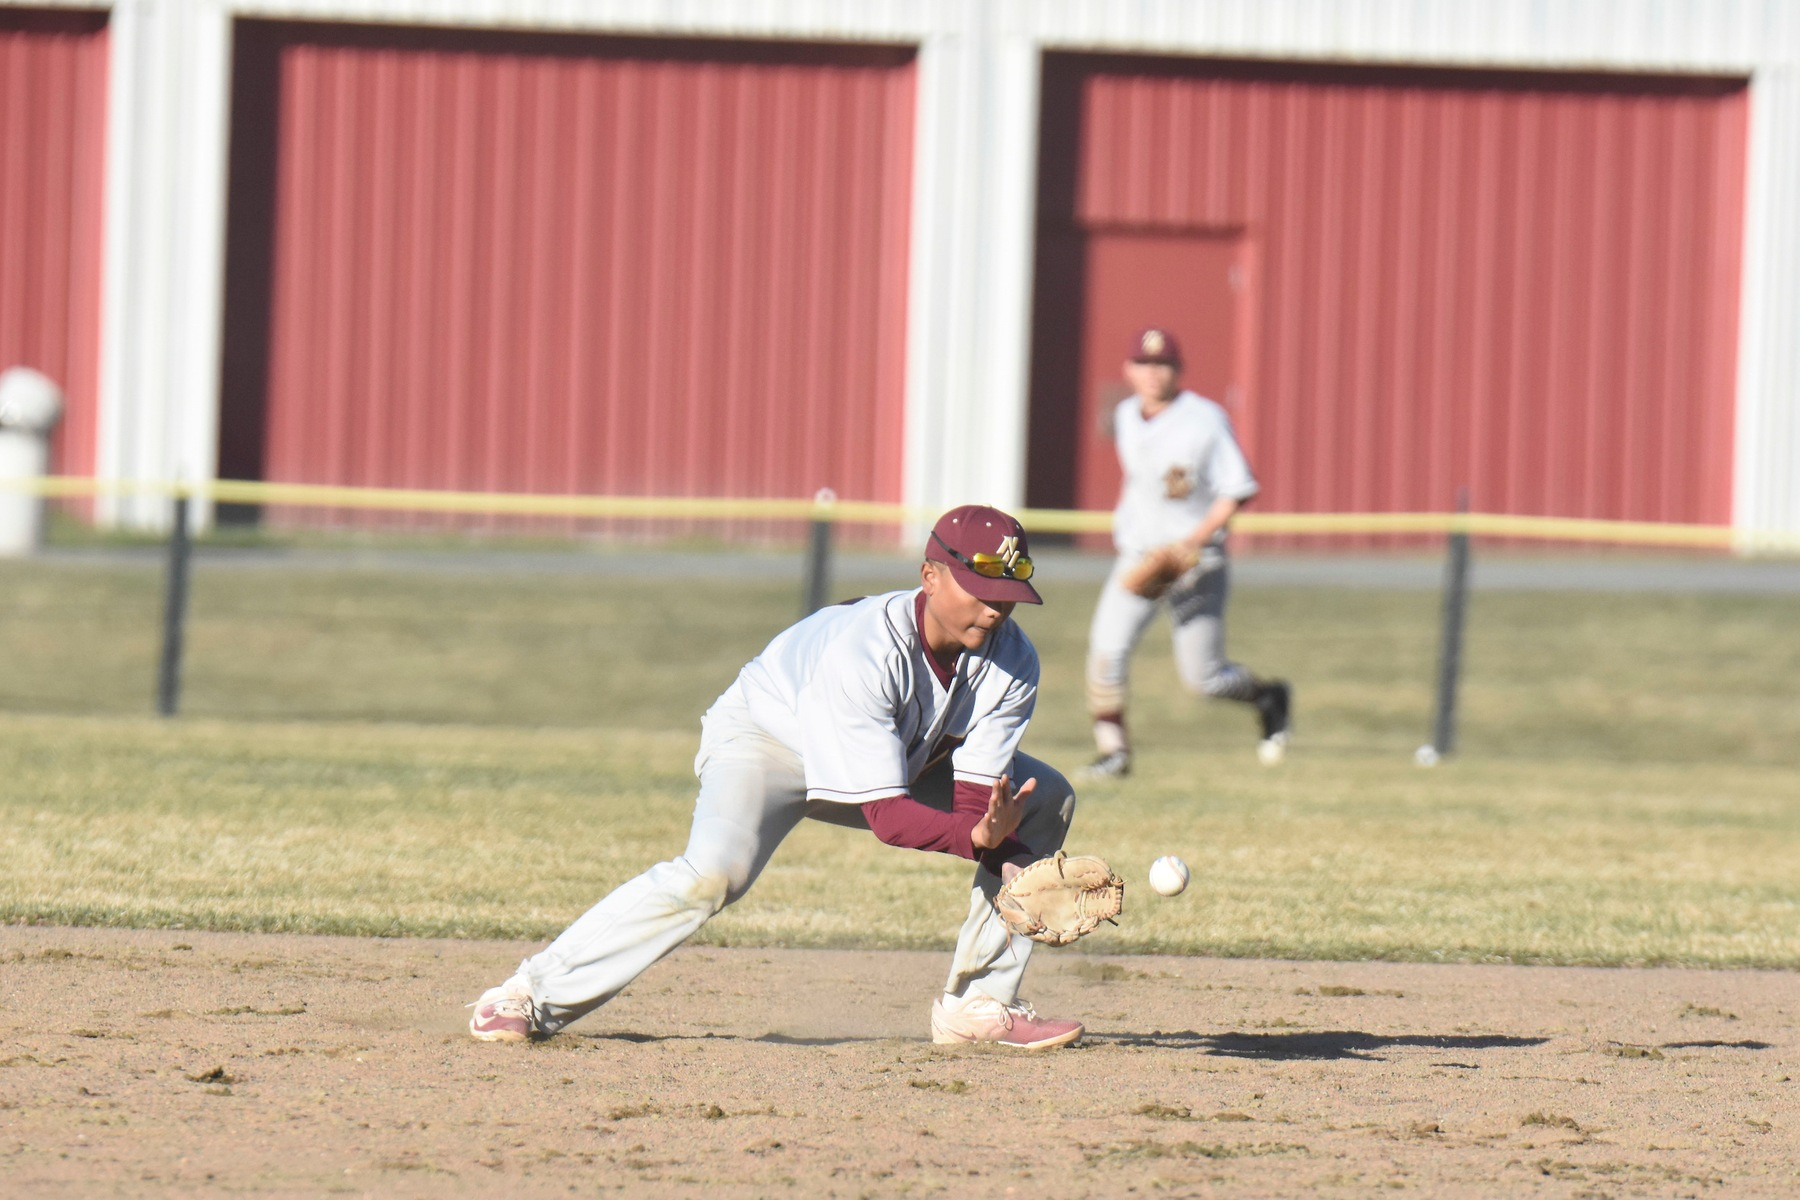 Baseball: Cadets Split Doubleheader at Lasers